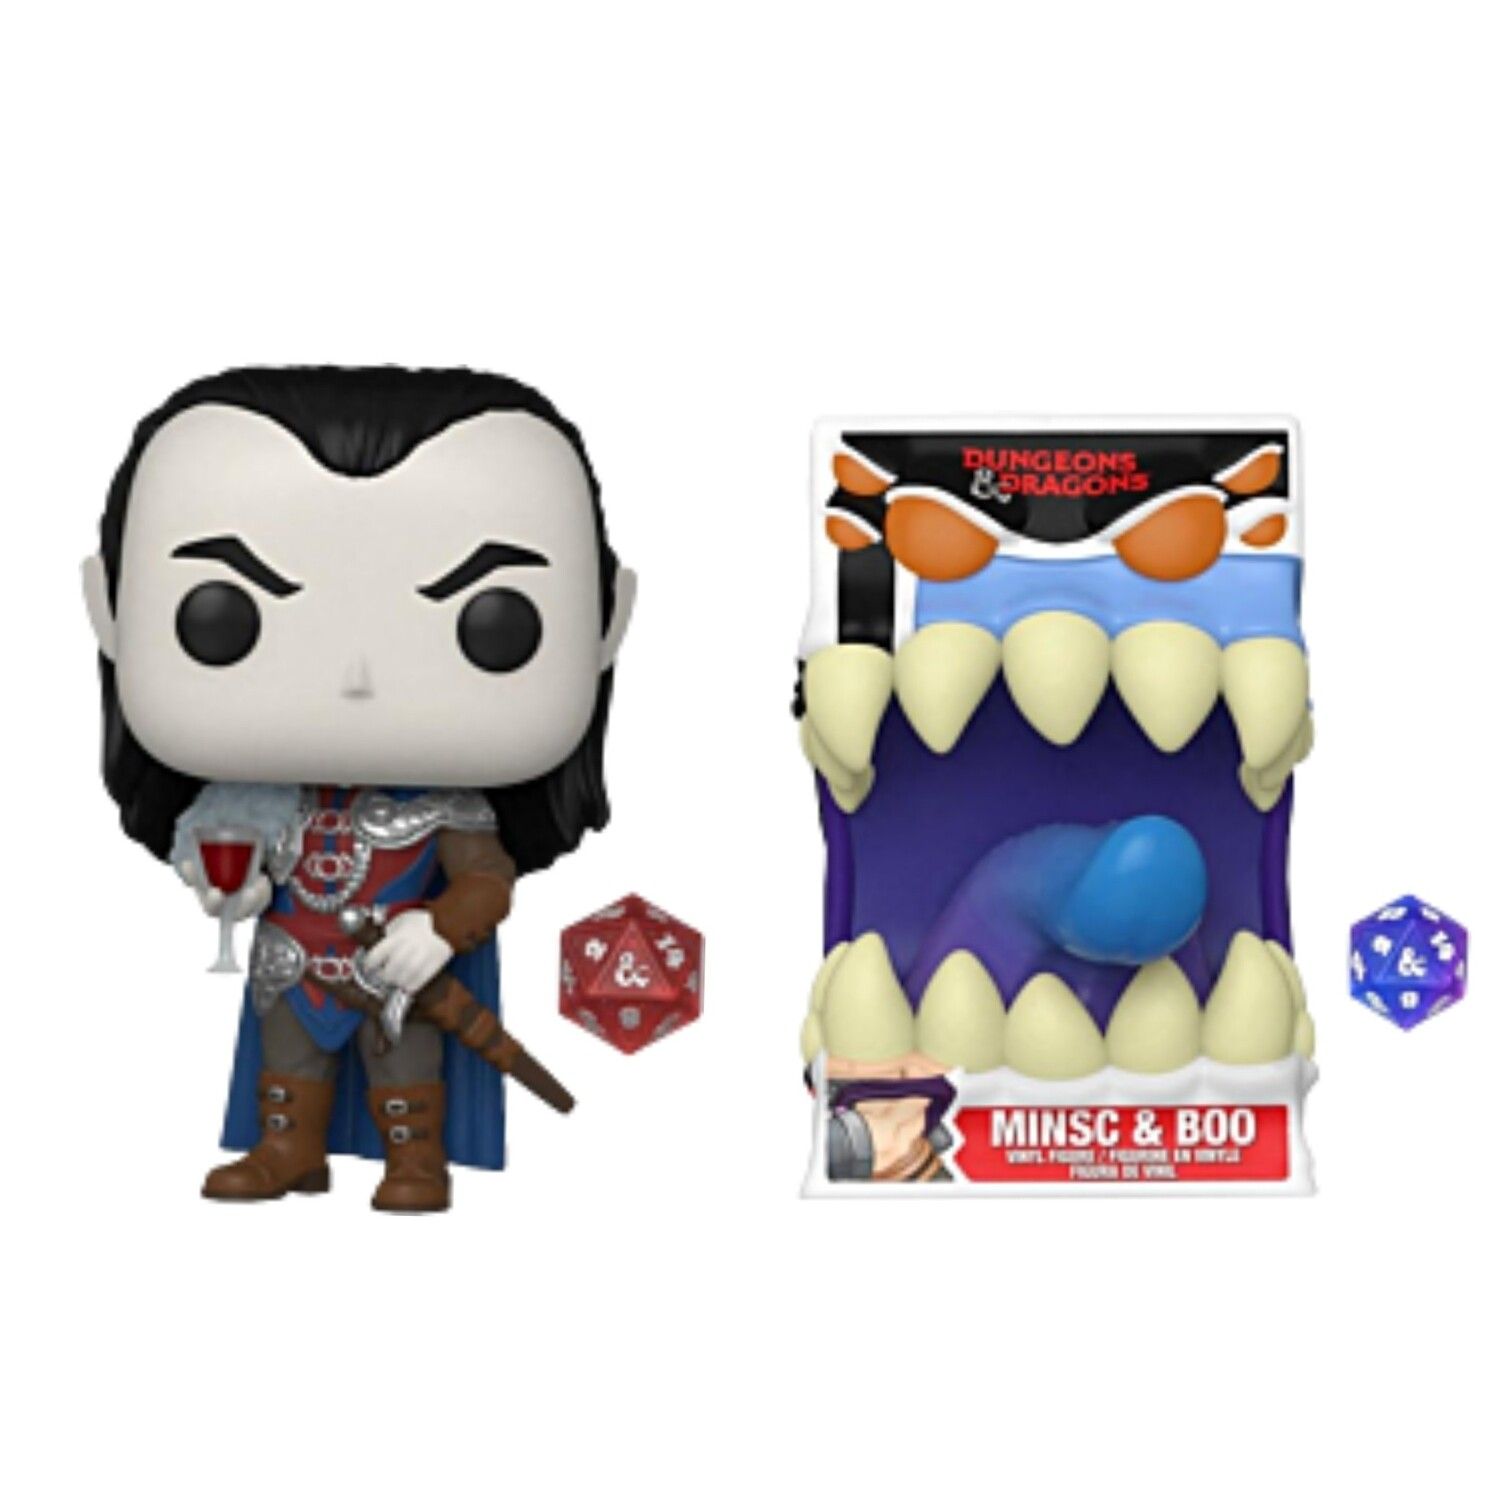 Pre-Order: Dungeons & Dragons - Strahd Pop! Vinyl Figure with Dice